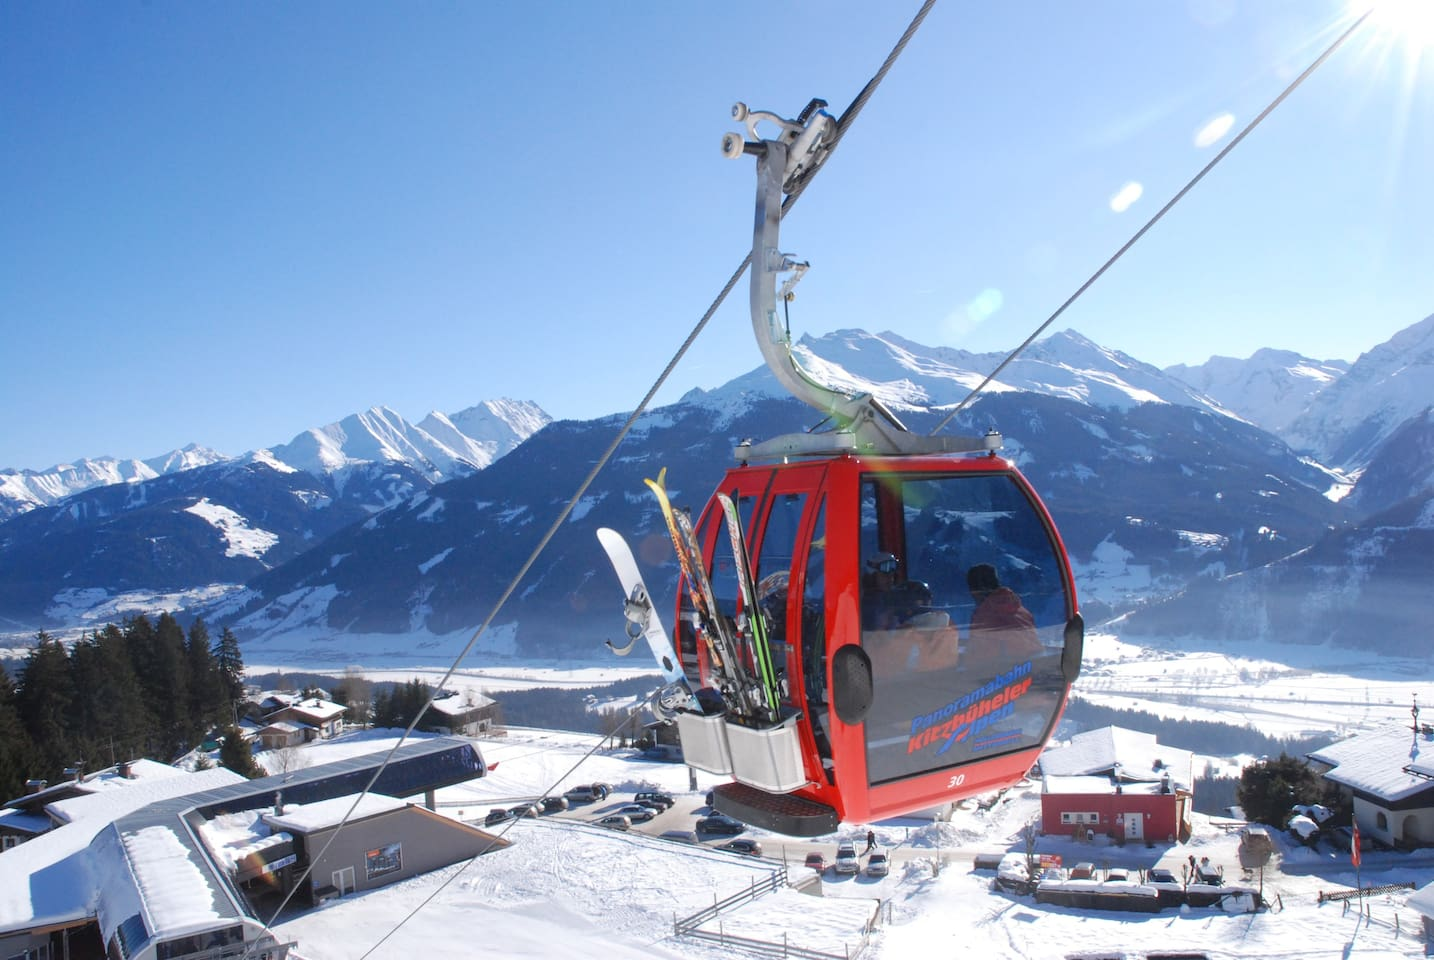 Our Restaurant to the right (red house) and the middlestation with the gondola 1 min to walk